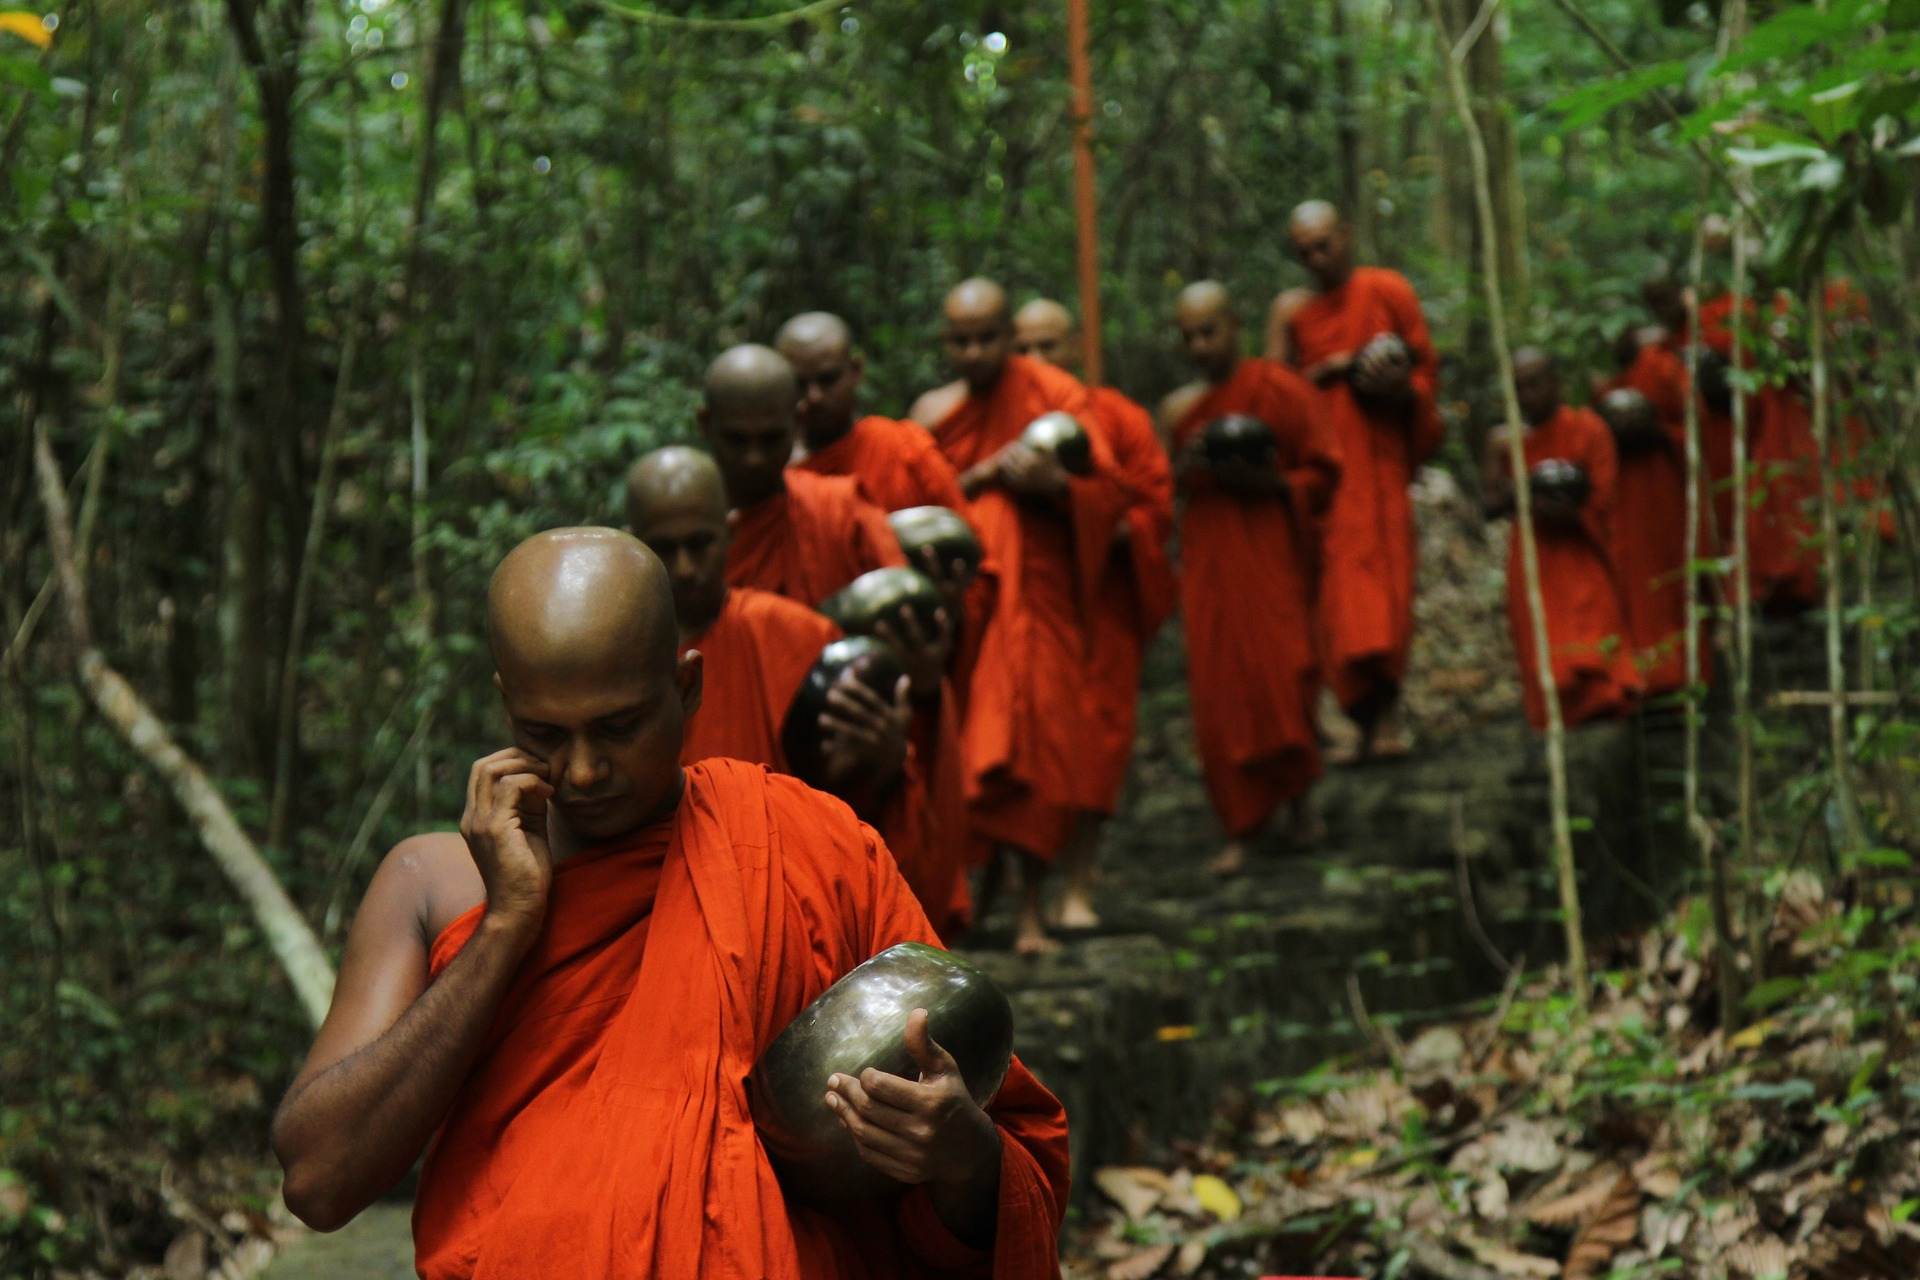 -The Earth's Keepers: How Religion Can Guide Environmentalism